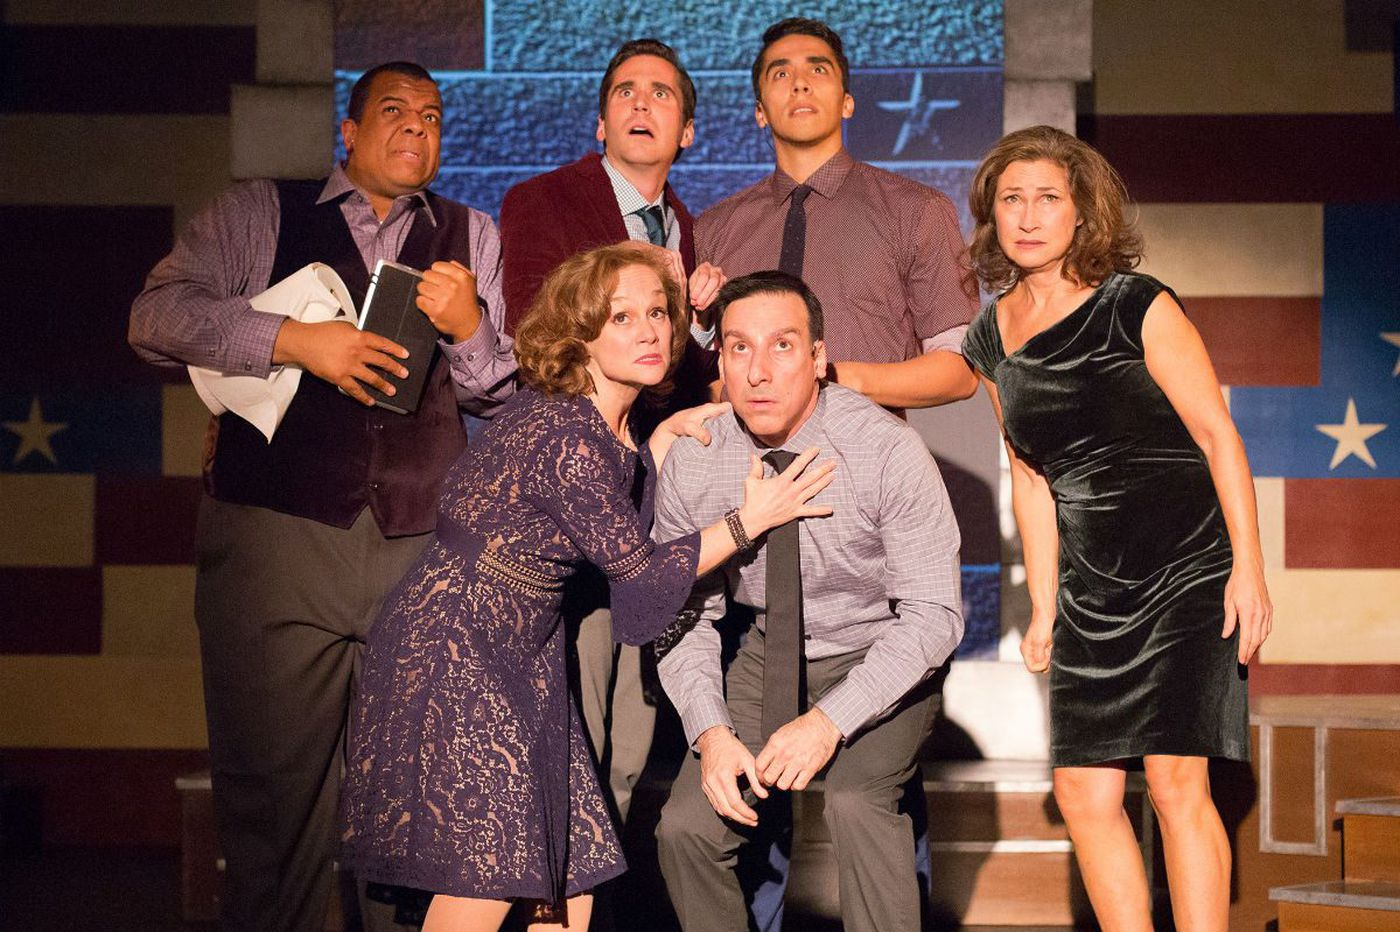 Make fun of already ridiculous politics? 1812 Productions' 'Week' tries, with spotty results